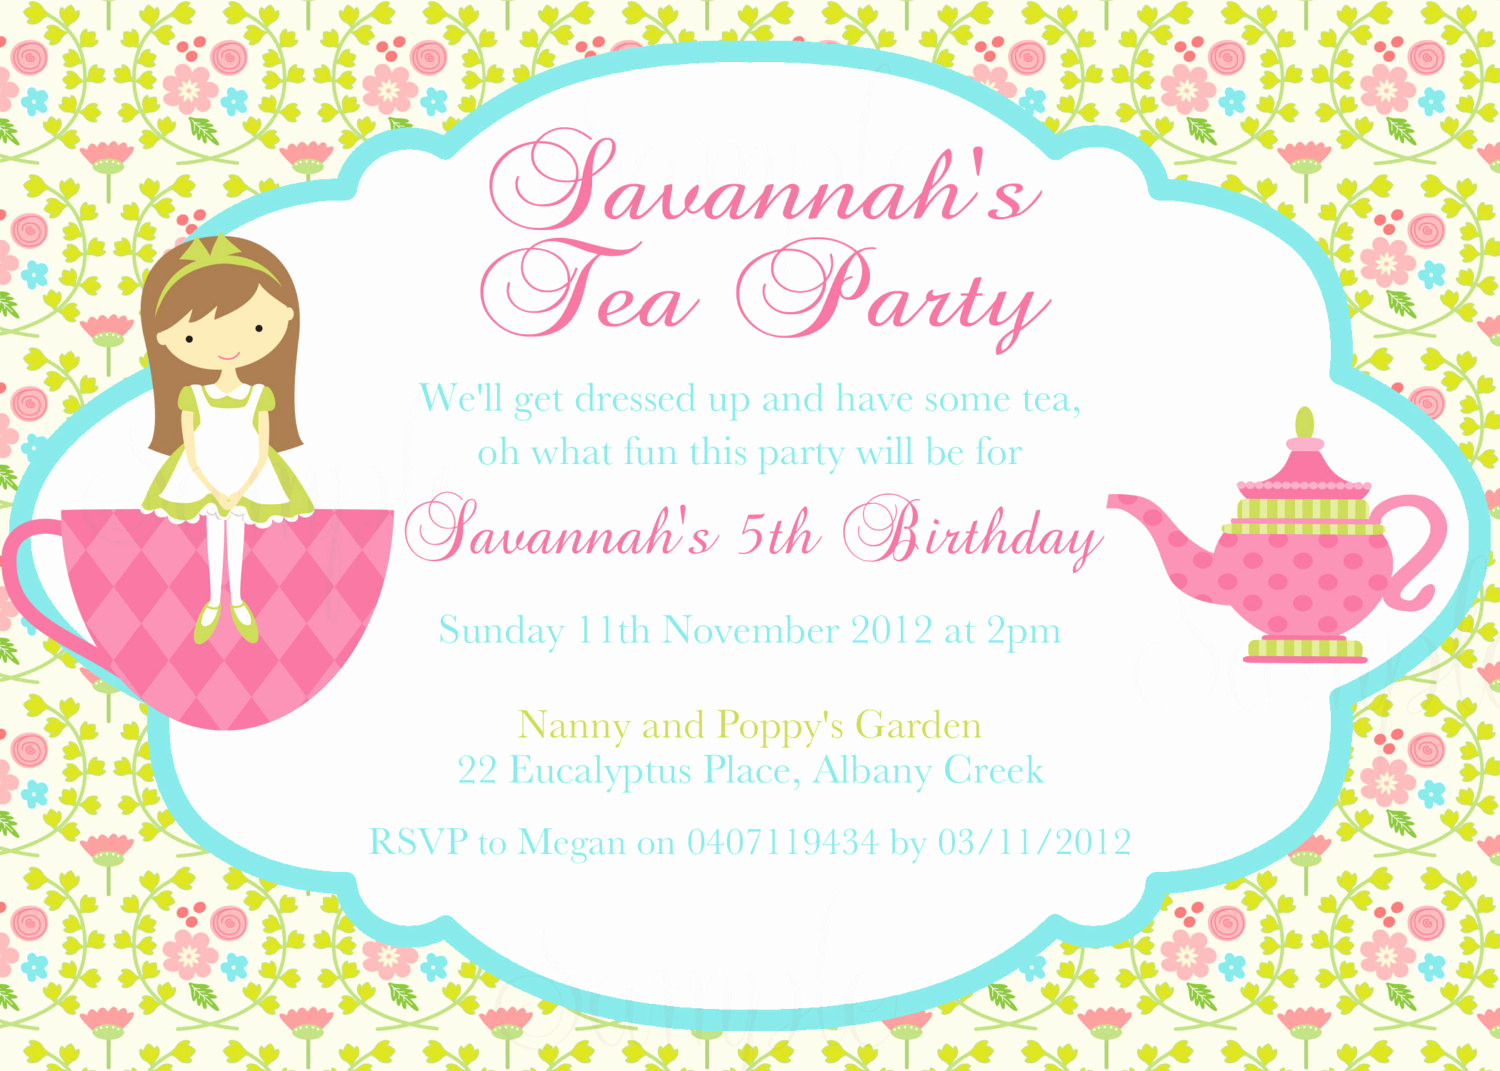 Tea Party Invitation Templates Elegant Tea Party Birthday theme Printable Invitation and Gift Favor